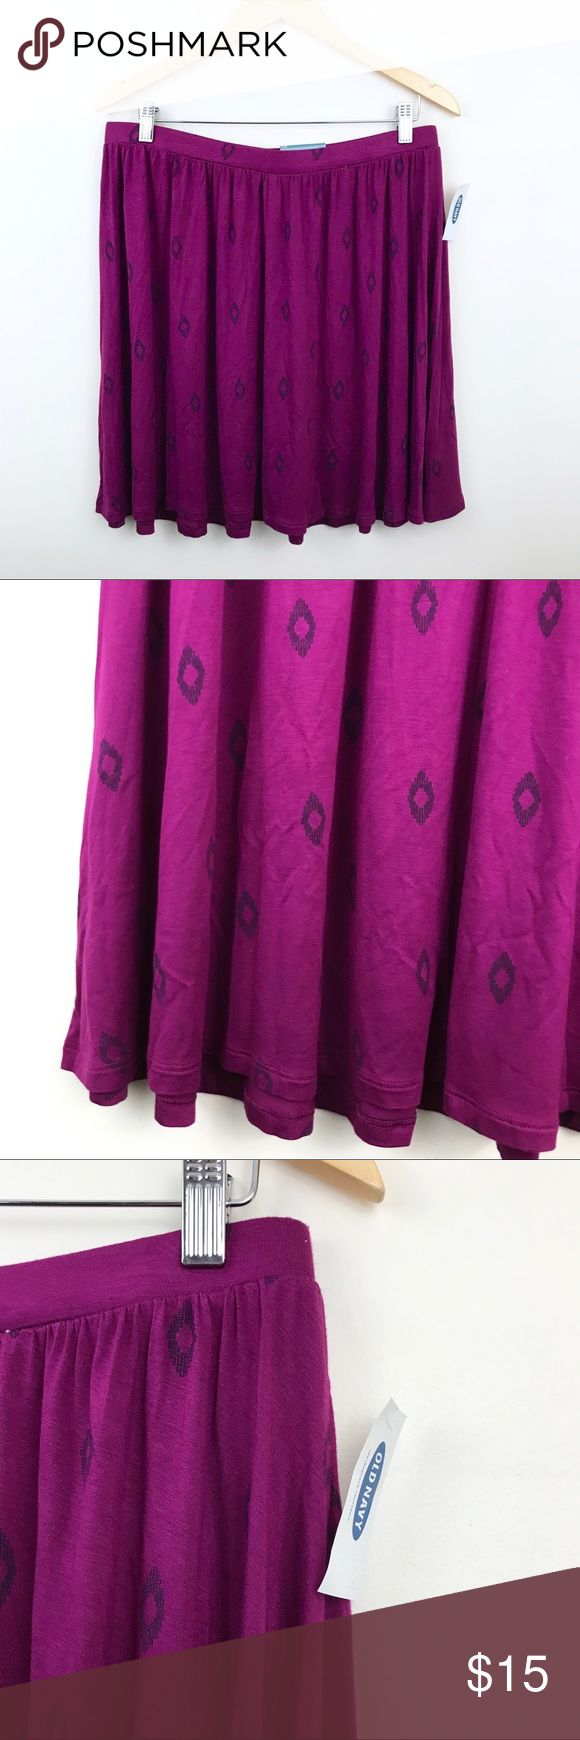 Old Navy Purple Fuchsia Circle Skirt Beautiful fuchsia colored Old Navy skirt with a simple purple design. Perfect for Spring 2018!   CONDITION Brand new with tags! No flaws.   MEASUREMENTS Waist: 16.5in (measured flat, waistband is very stretchy)  Length: 18.5in  MATERIALS 95% Rayon 5% Spandex  • ALL OFFERS WELCOME! • Lowballs don't offend me. I'm happy to negotiate ☺️   Don't forget that bundles of 3+ get 15% off! Old Navy Skirts Circle & Skater